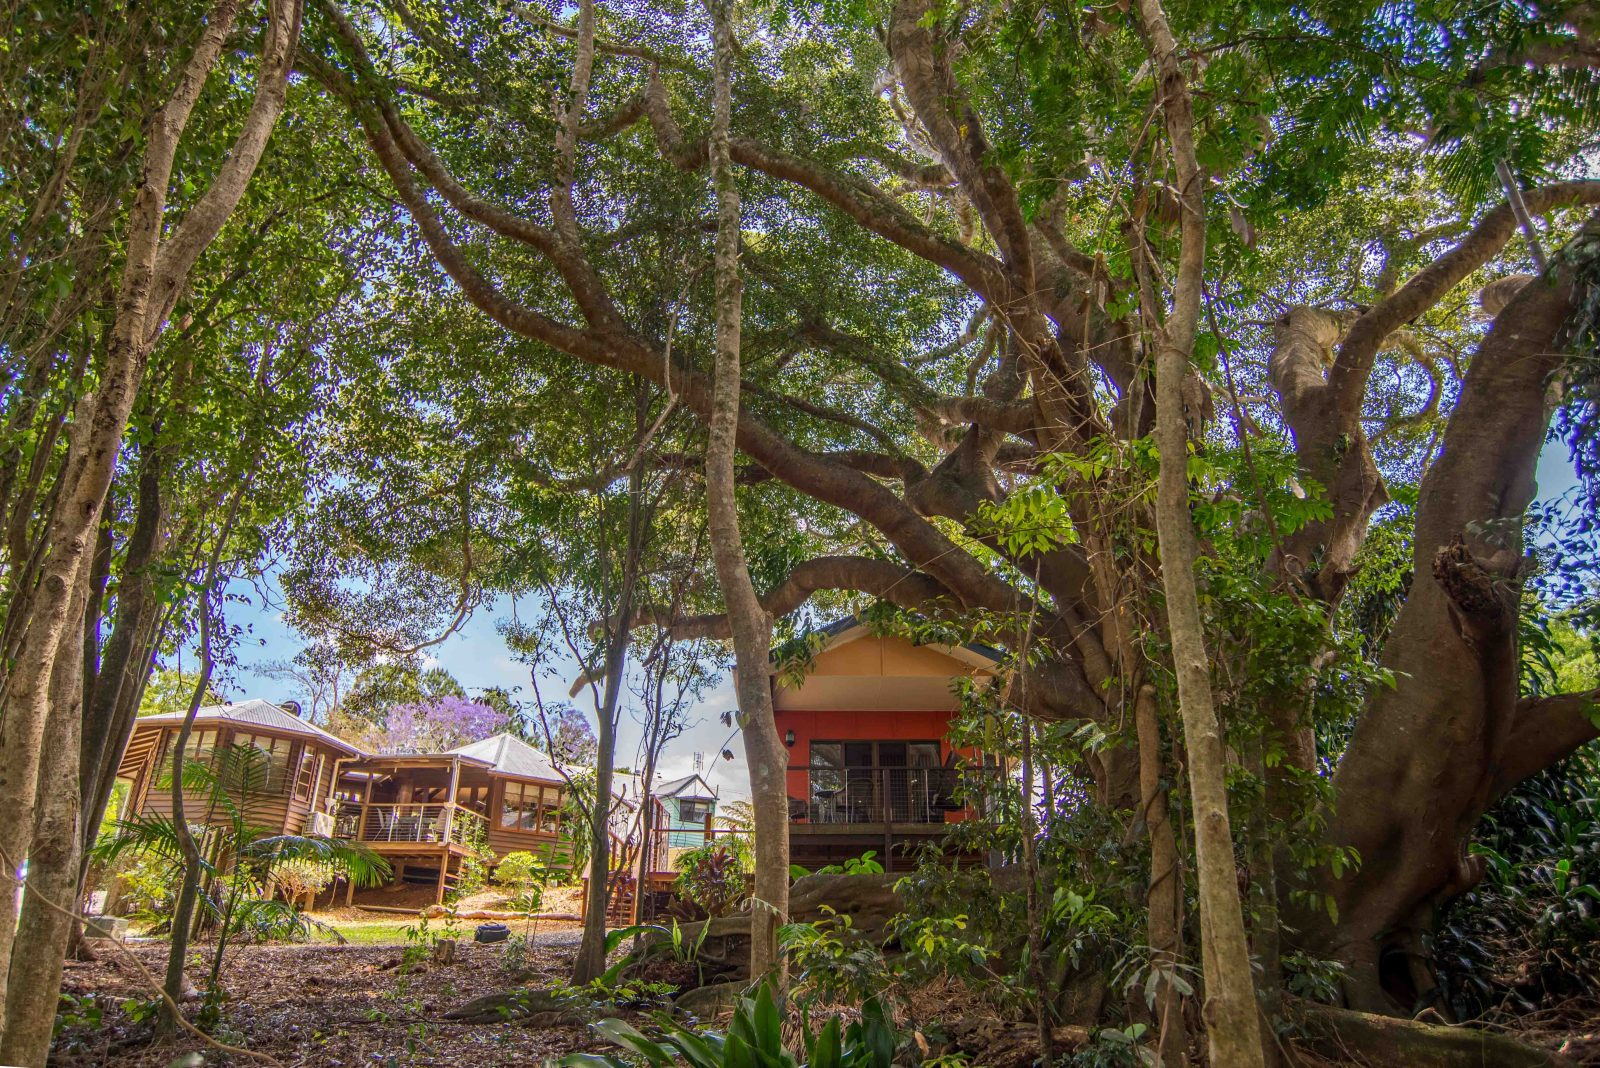 Exterior photo of the rainforest cottage within The African Village - by Clouds in Maleny